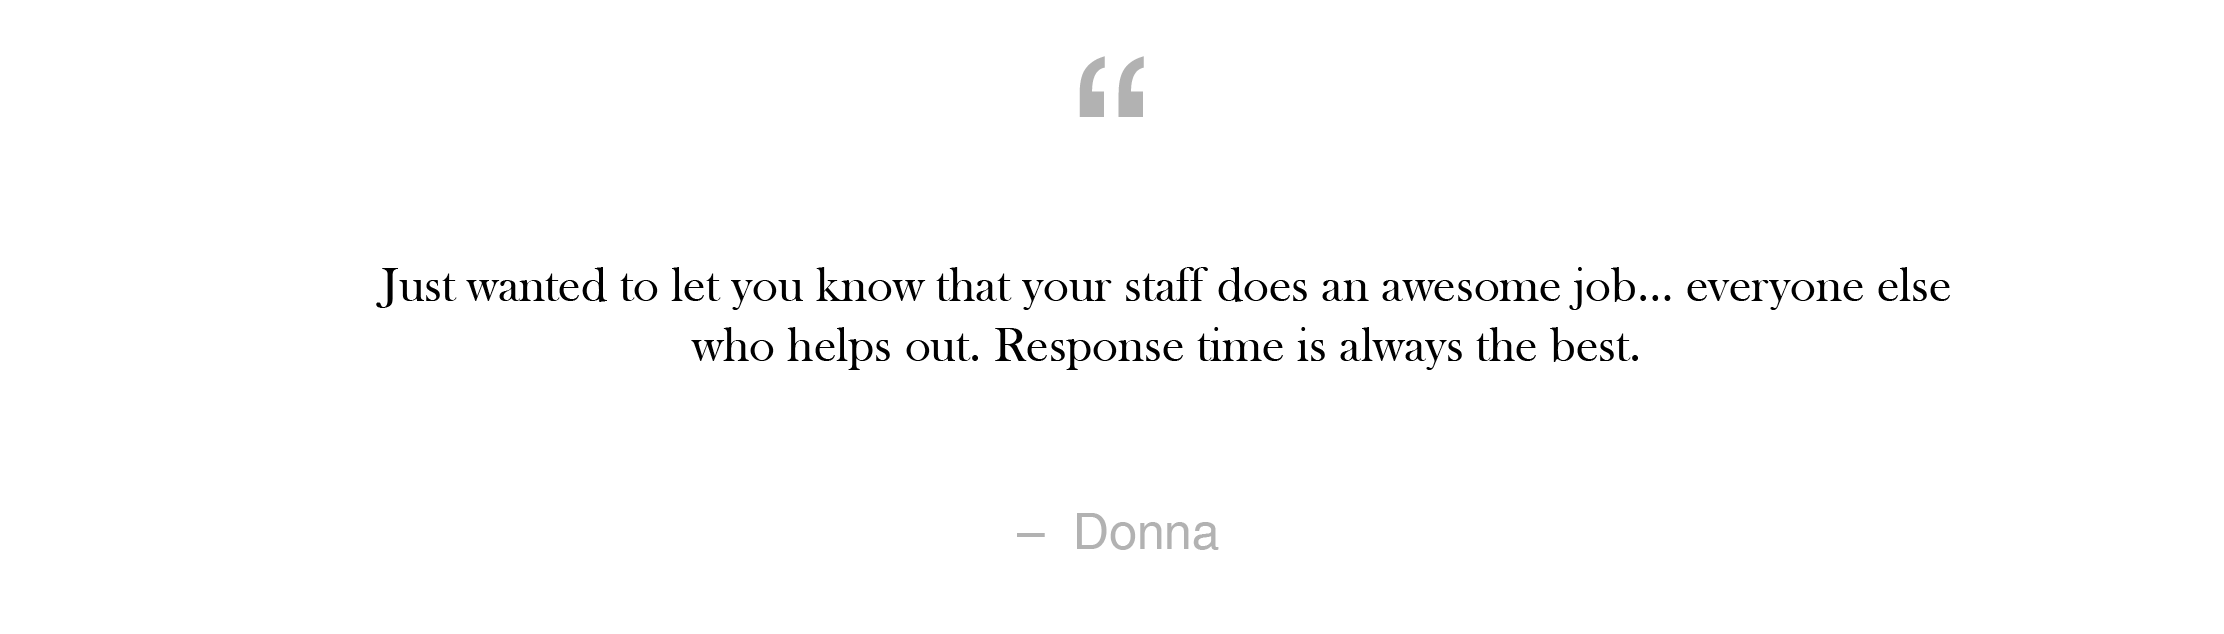 Quote#6_Donna-01.png